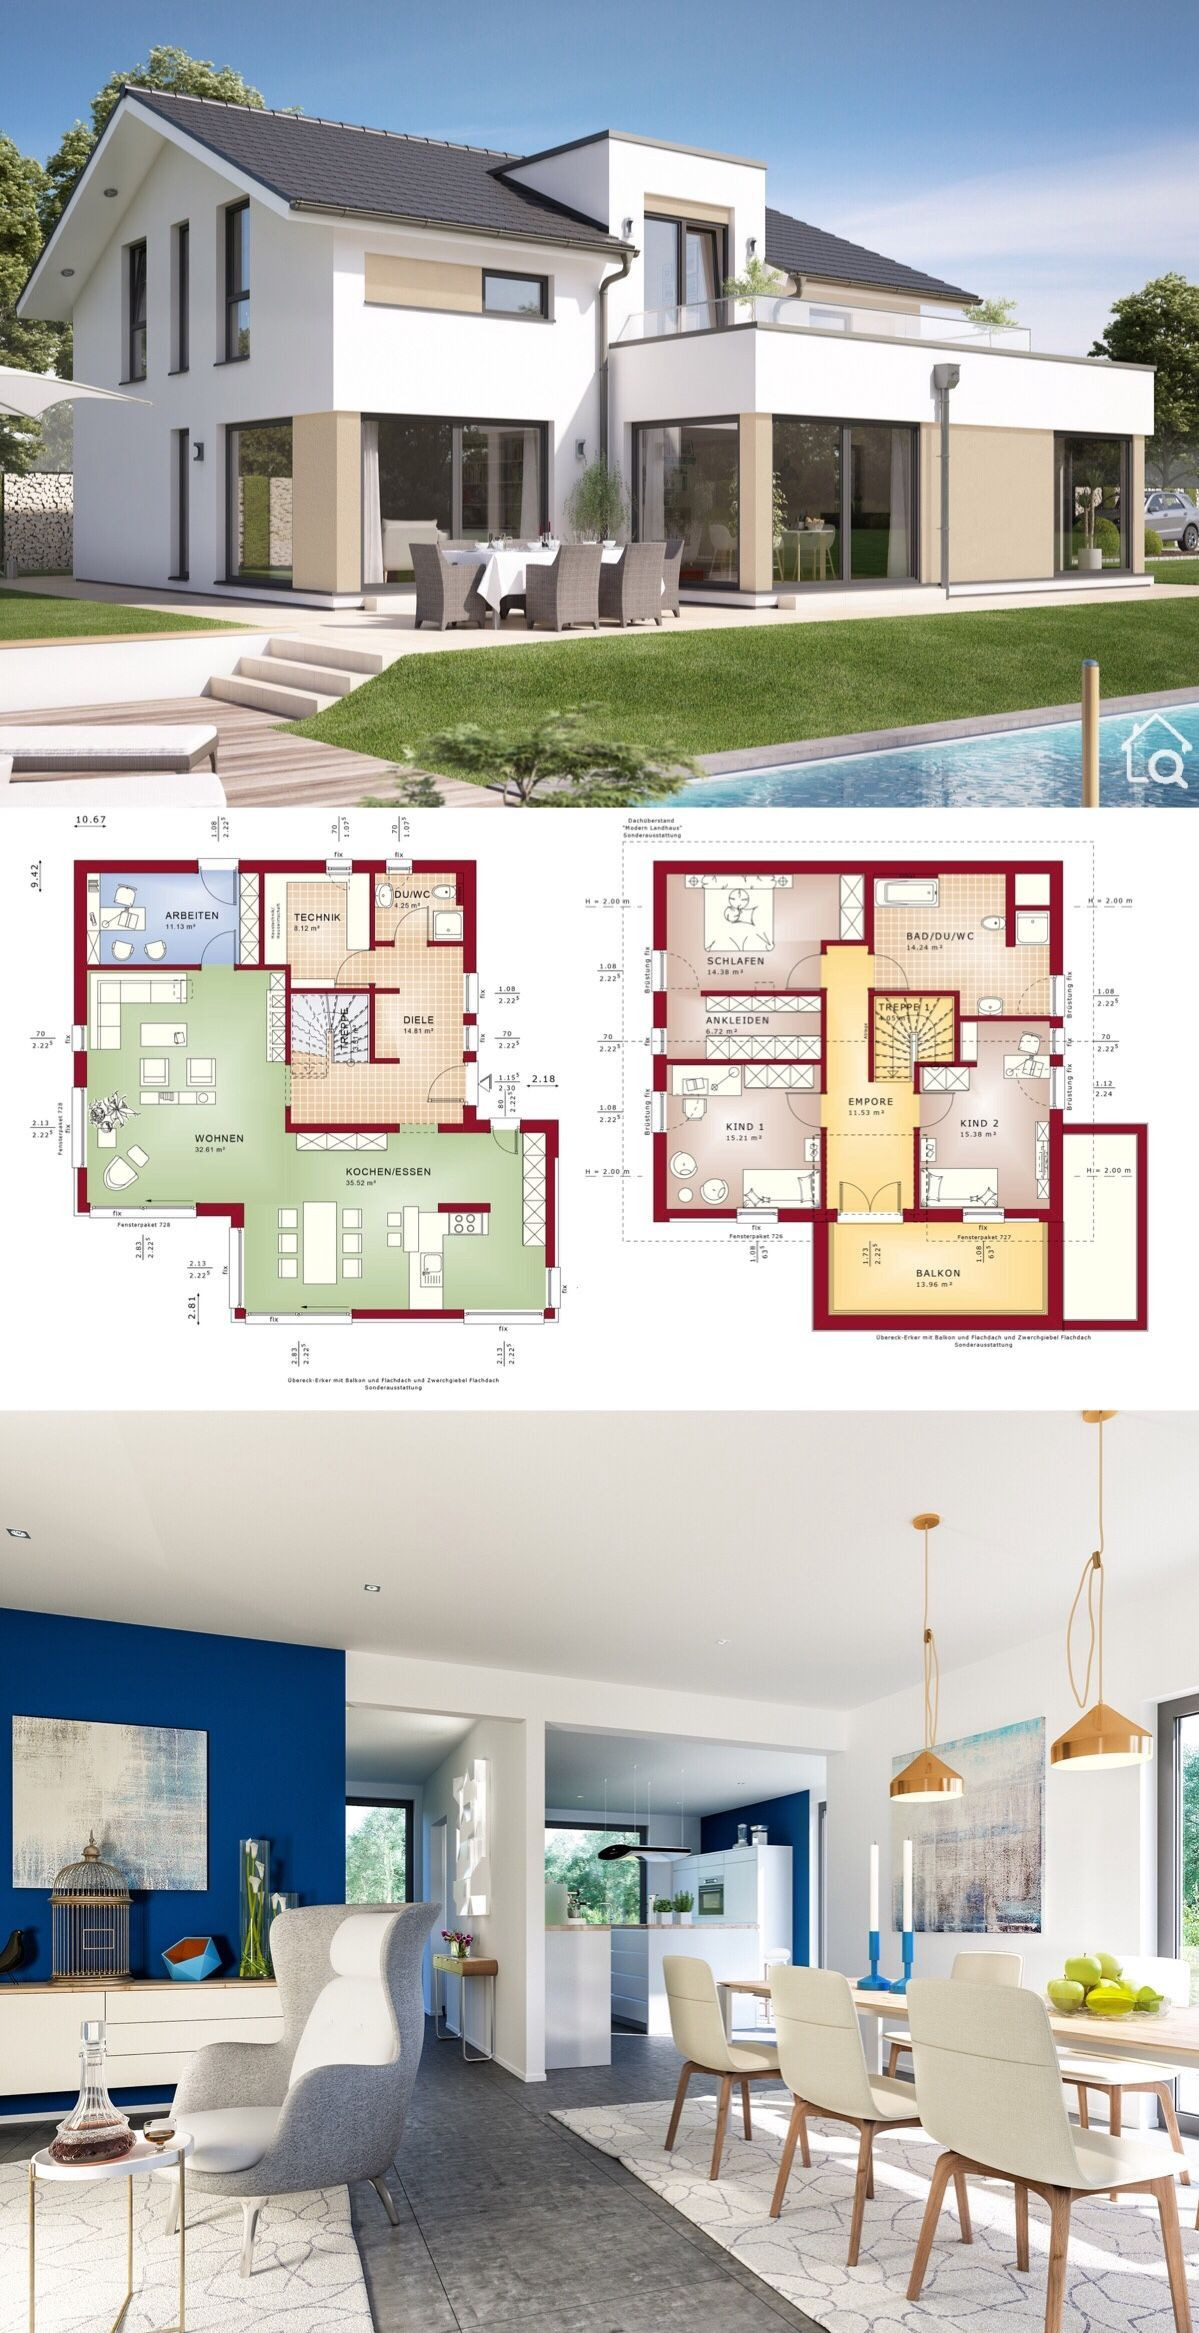 House Plans with Interior Photos Unique Two Floor House Plans Modern Contemporary European Style